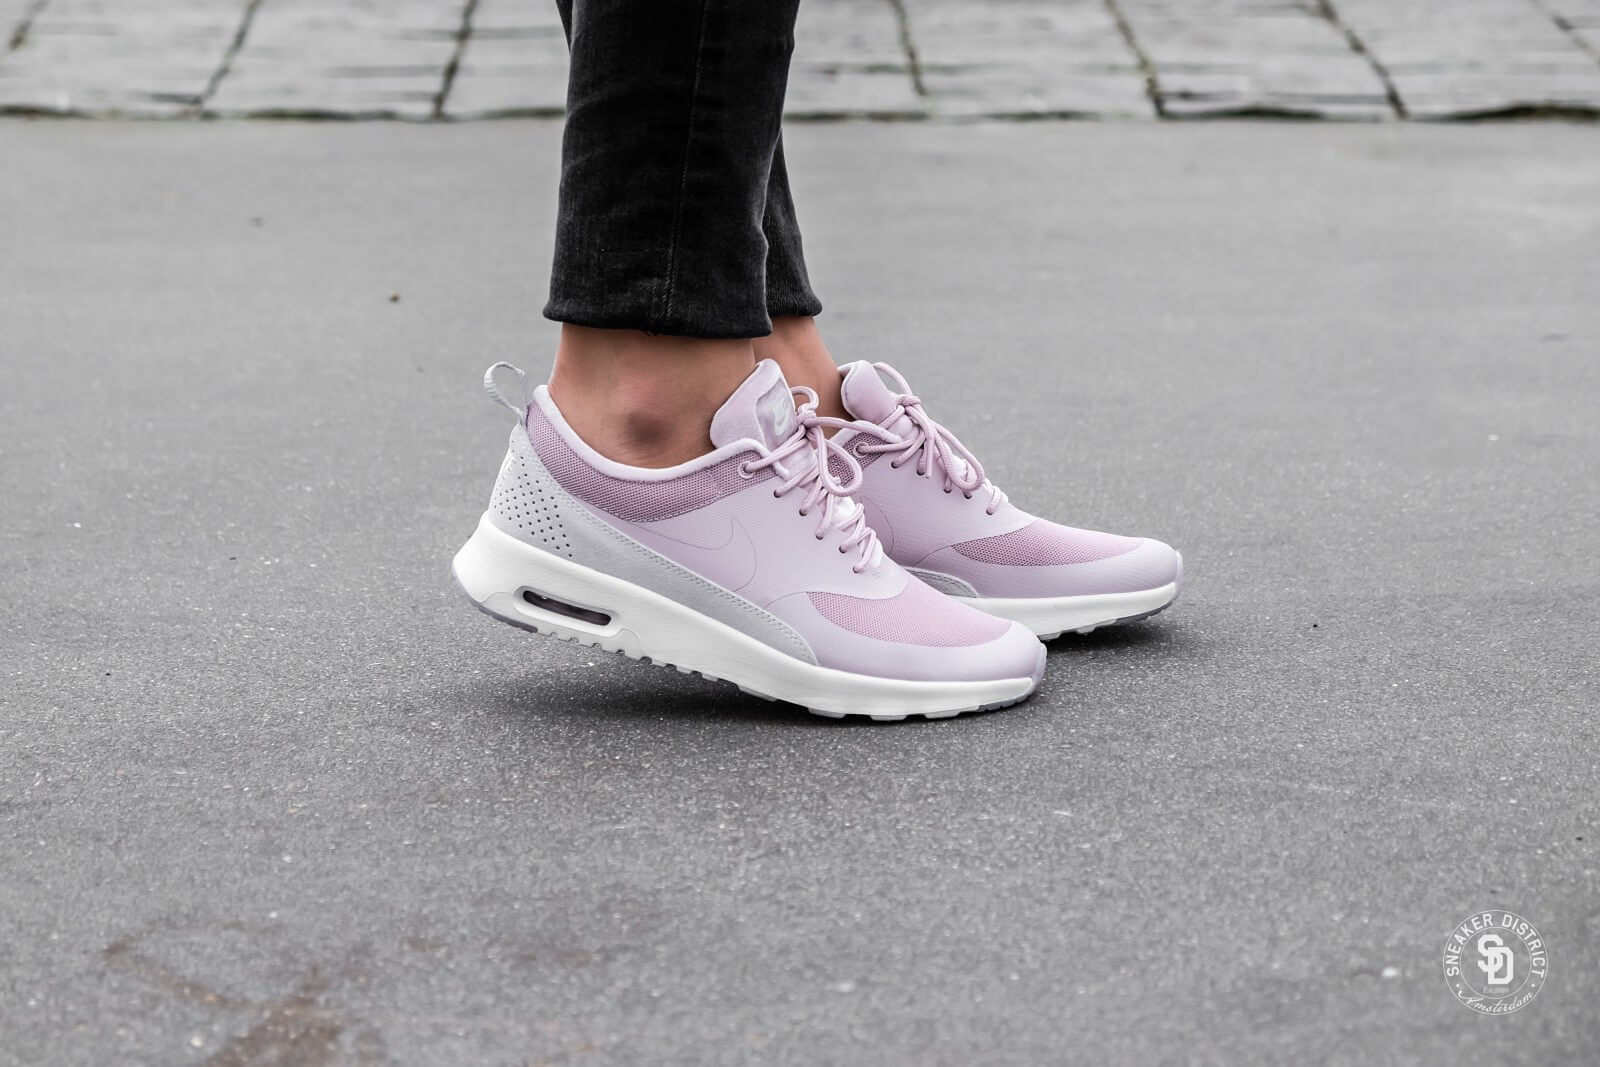 ventas especiales orden oficial mejor calificado Nike Women's Air Max Thea LX Particle Rose/Vast Grey - 881203-600